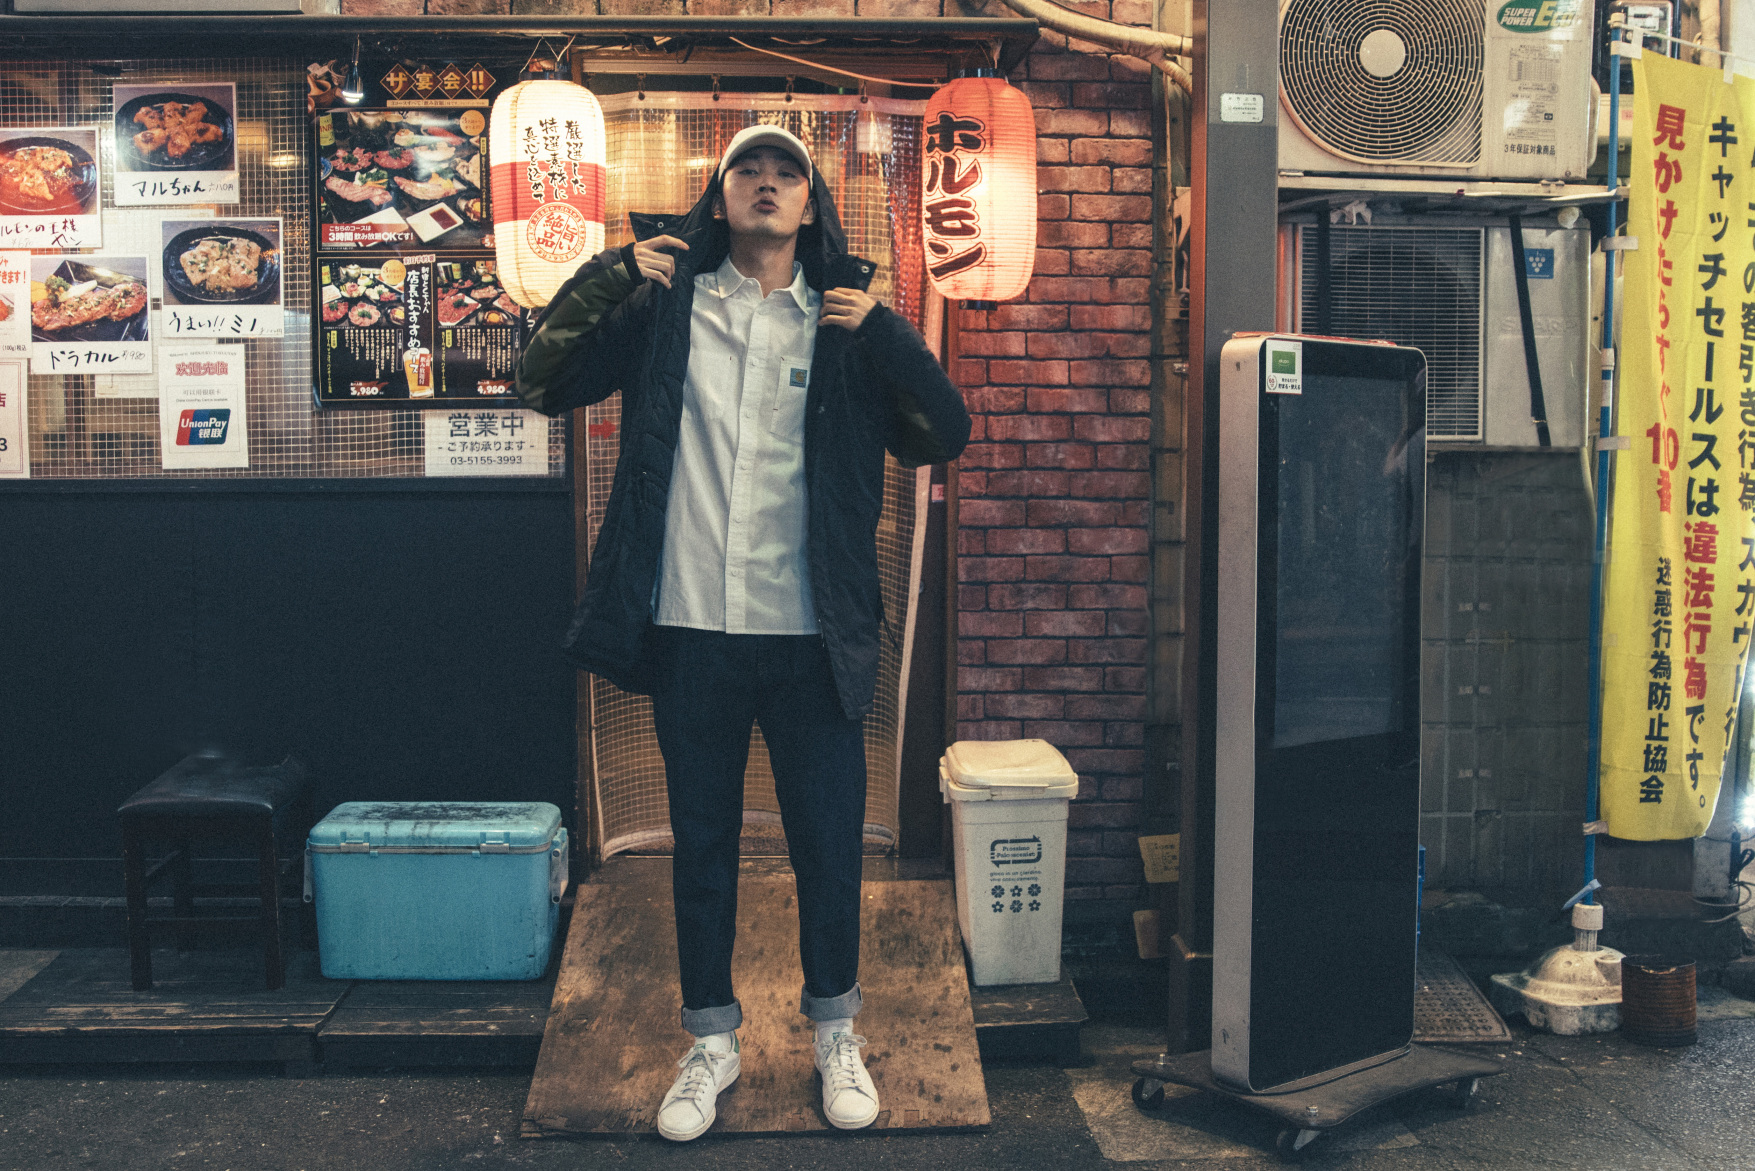 4fa97c4a926 Carhartt WIP is embracing Tokyo s wonderful versatility in their latest  lookbook  This is a tale of